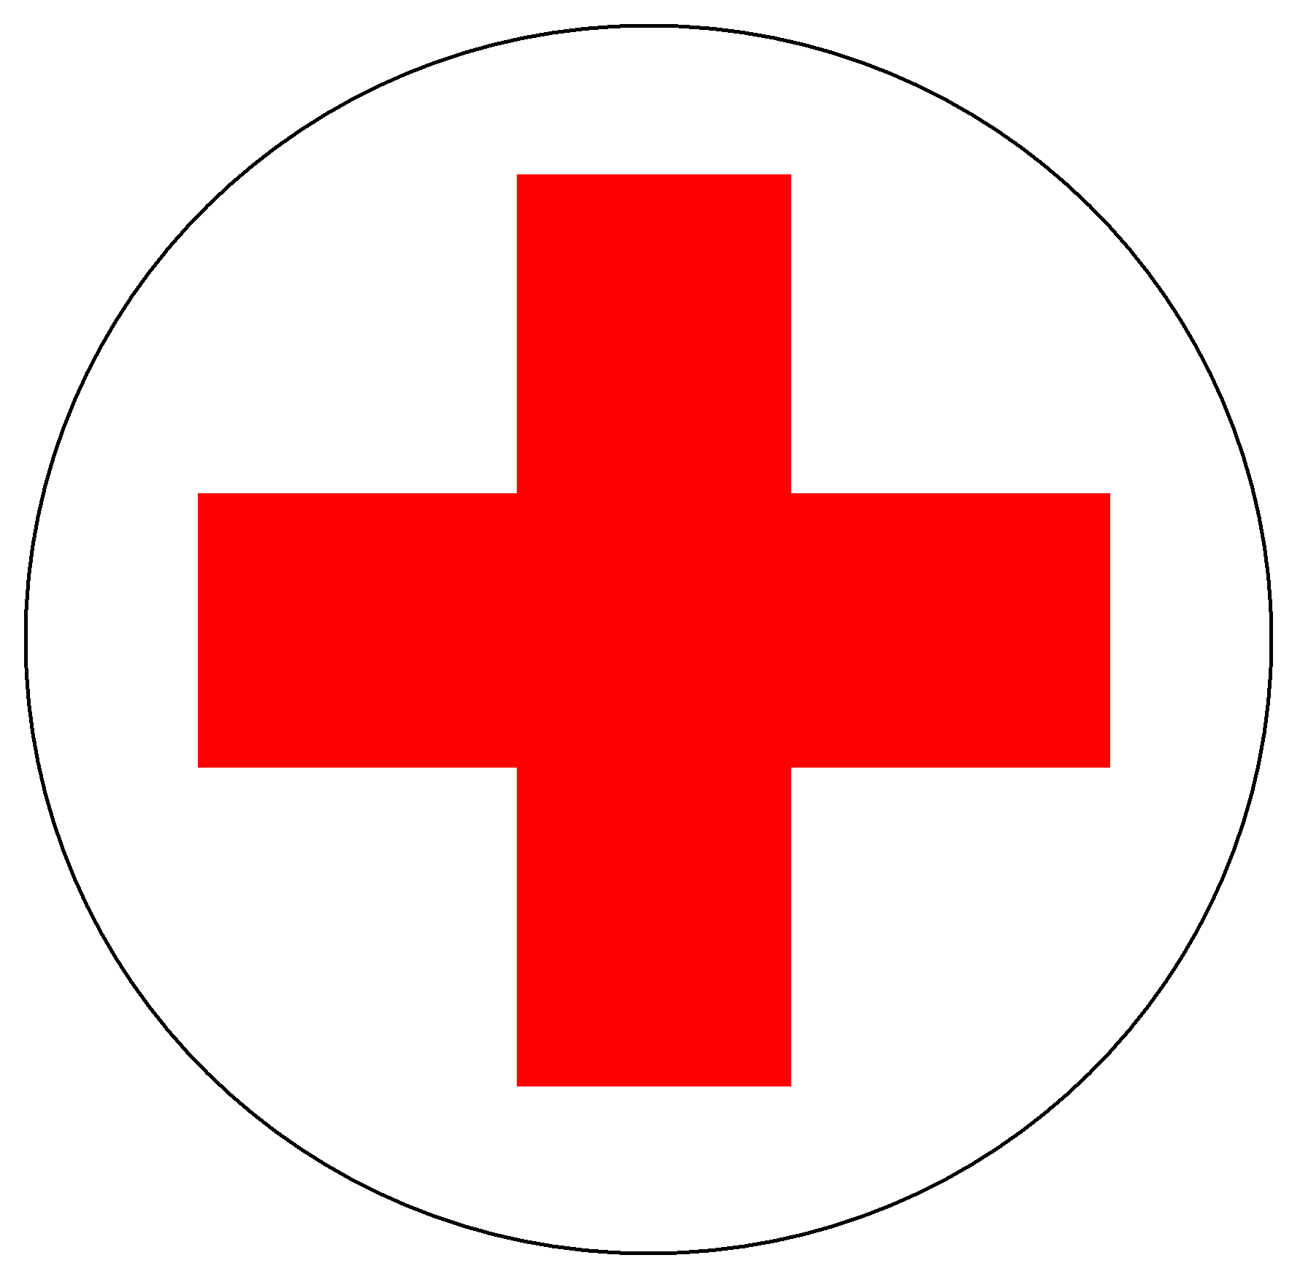 Meaning American Red Cross logo and symbol.